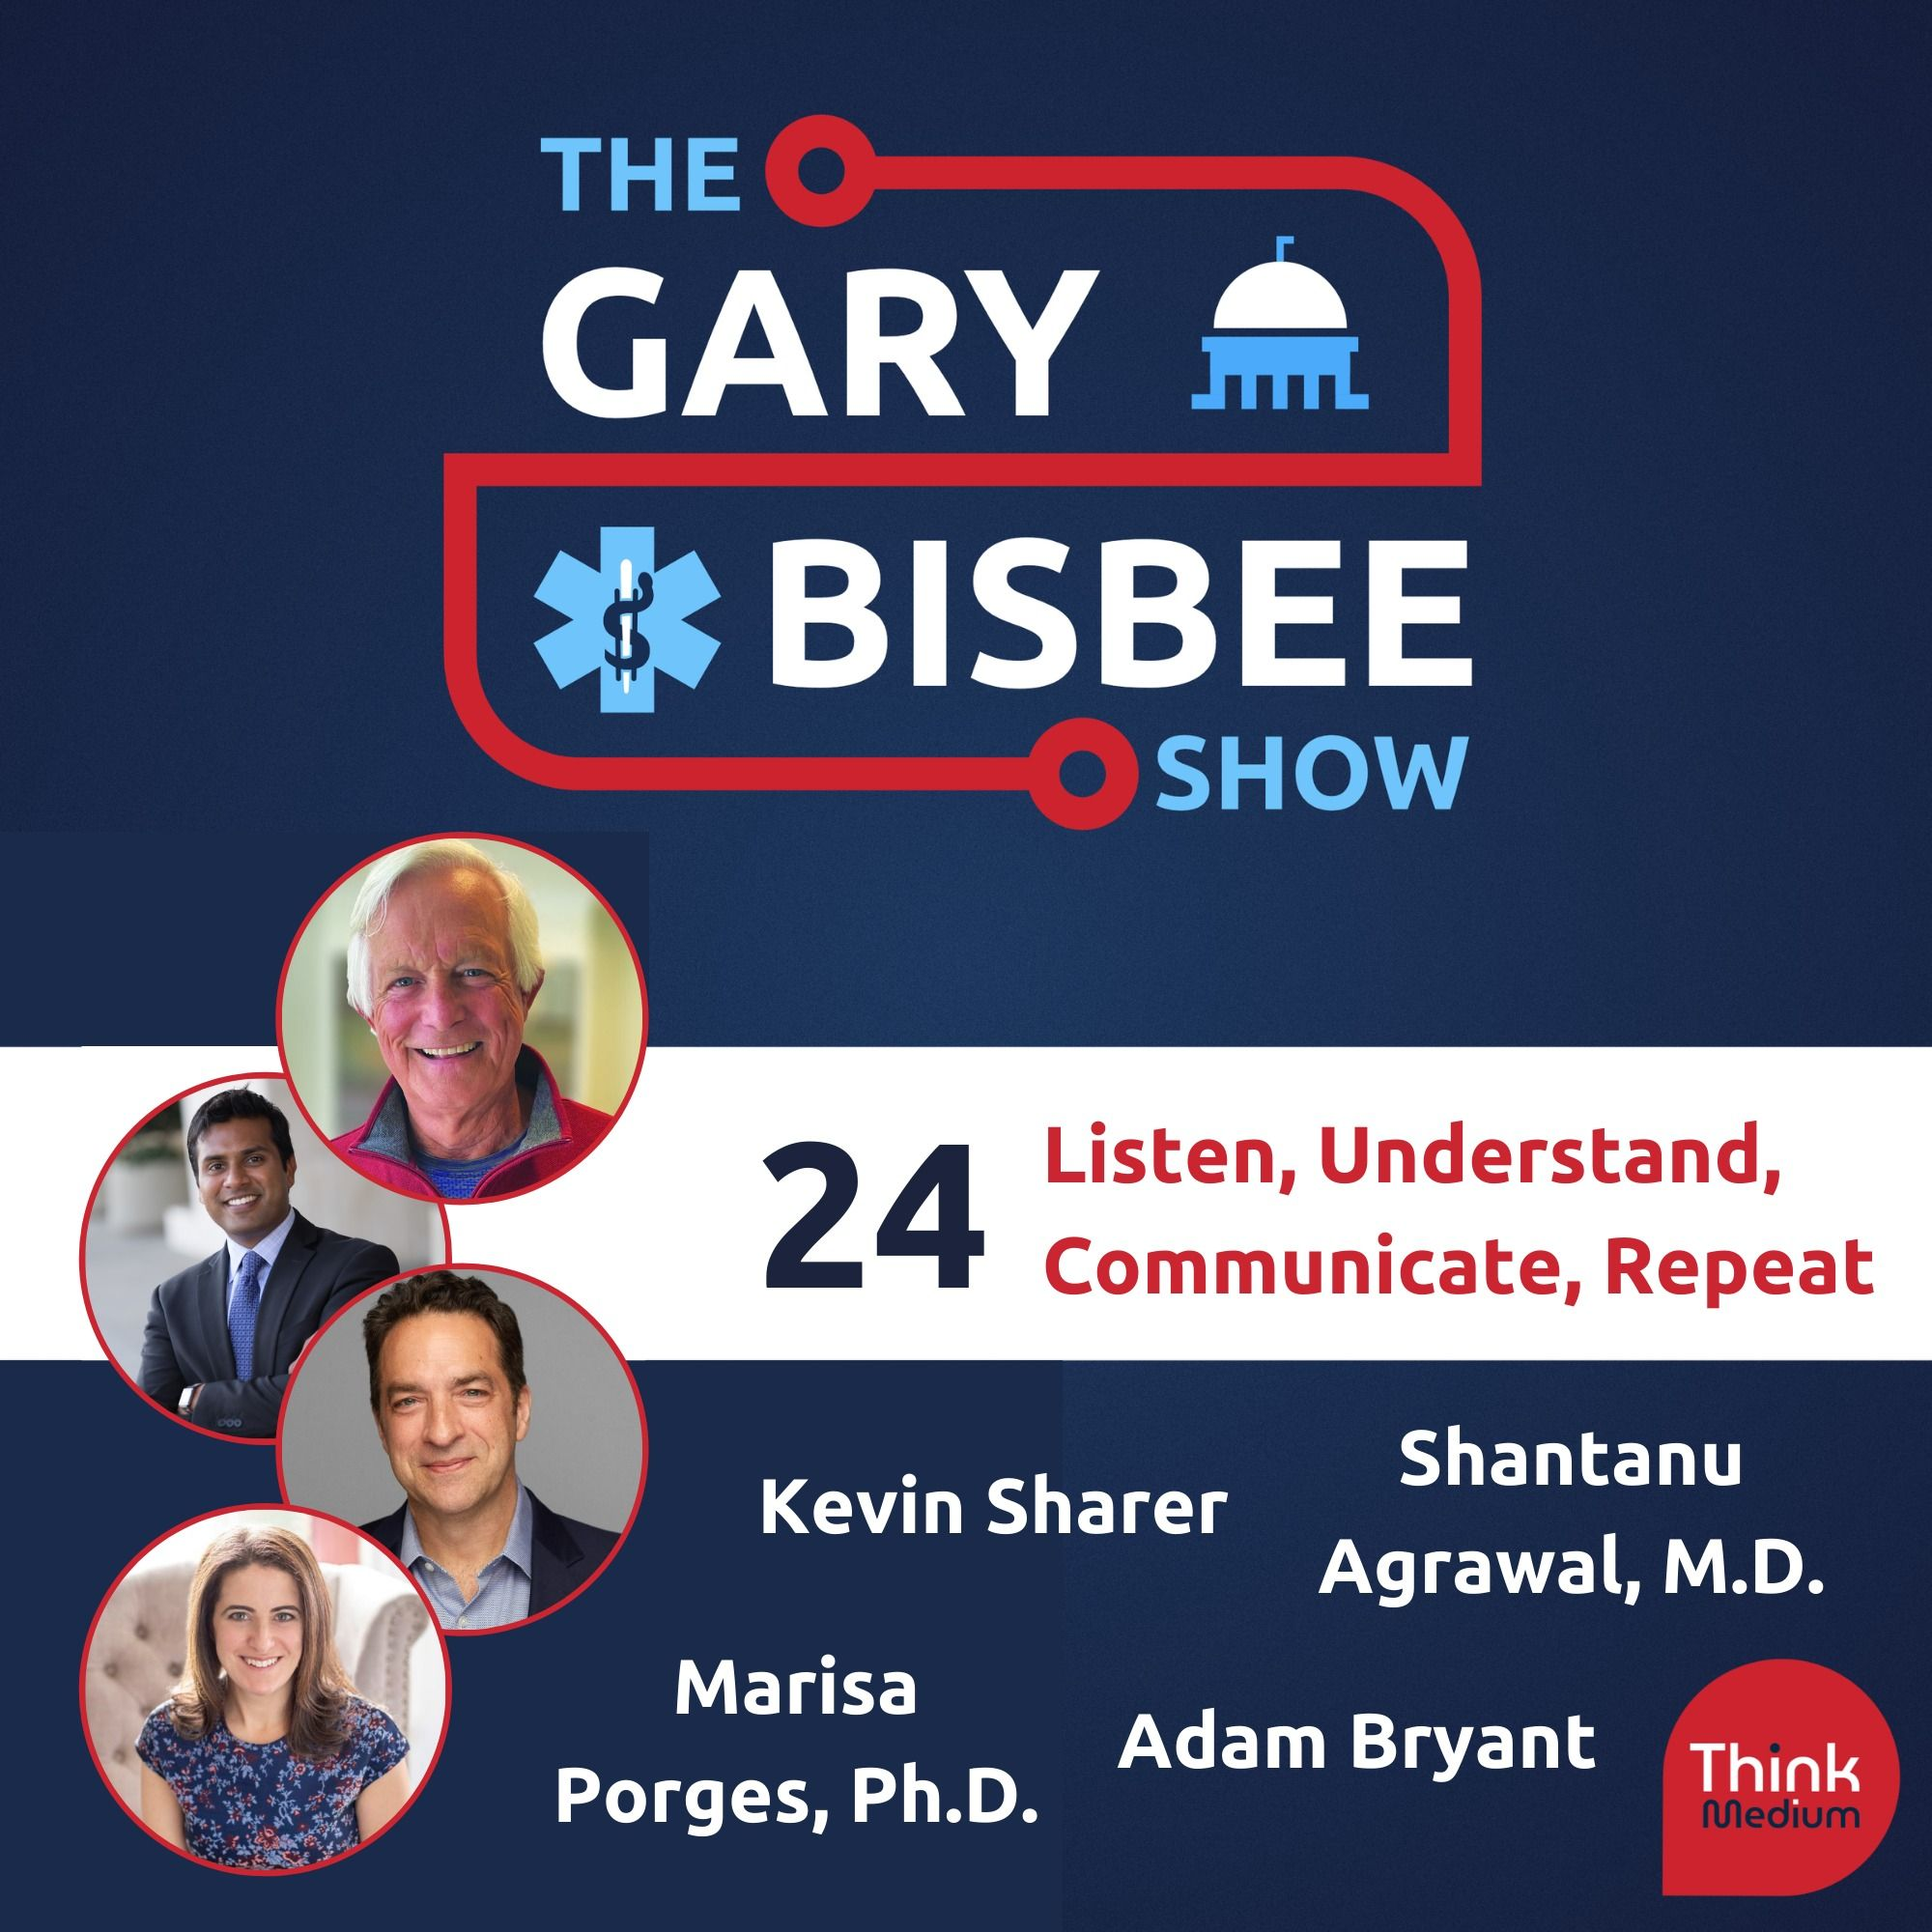 24: Listen, Understand, Communicate, Repeat, featuring Kevin Sharer, Shantanu Agrawal, M.D., Adam Bryant, and Marisa Porges, Ph.D